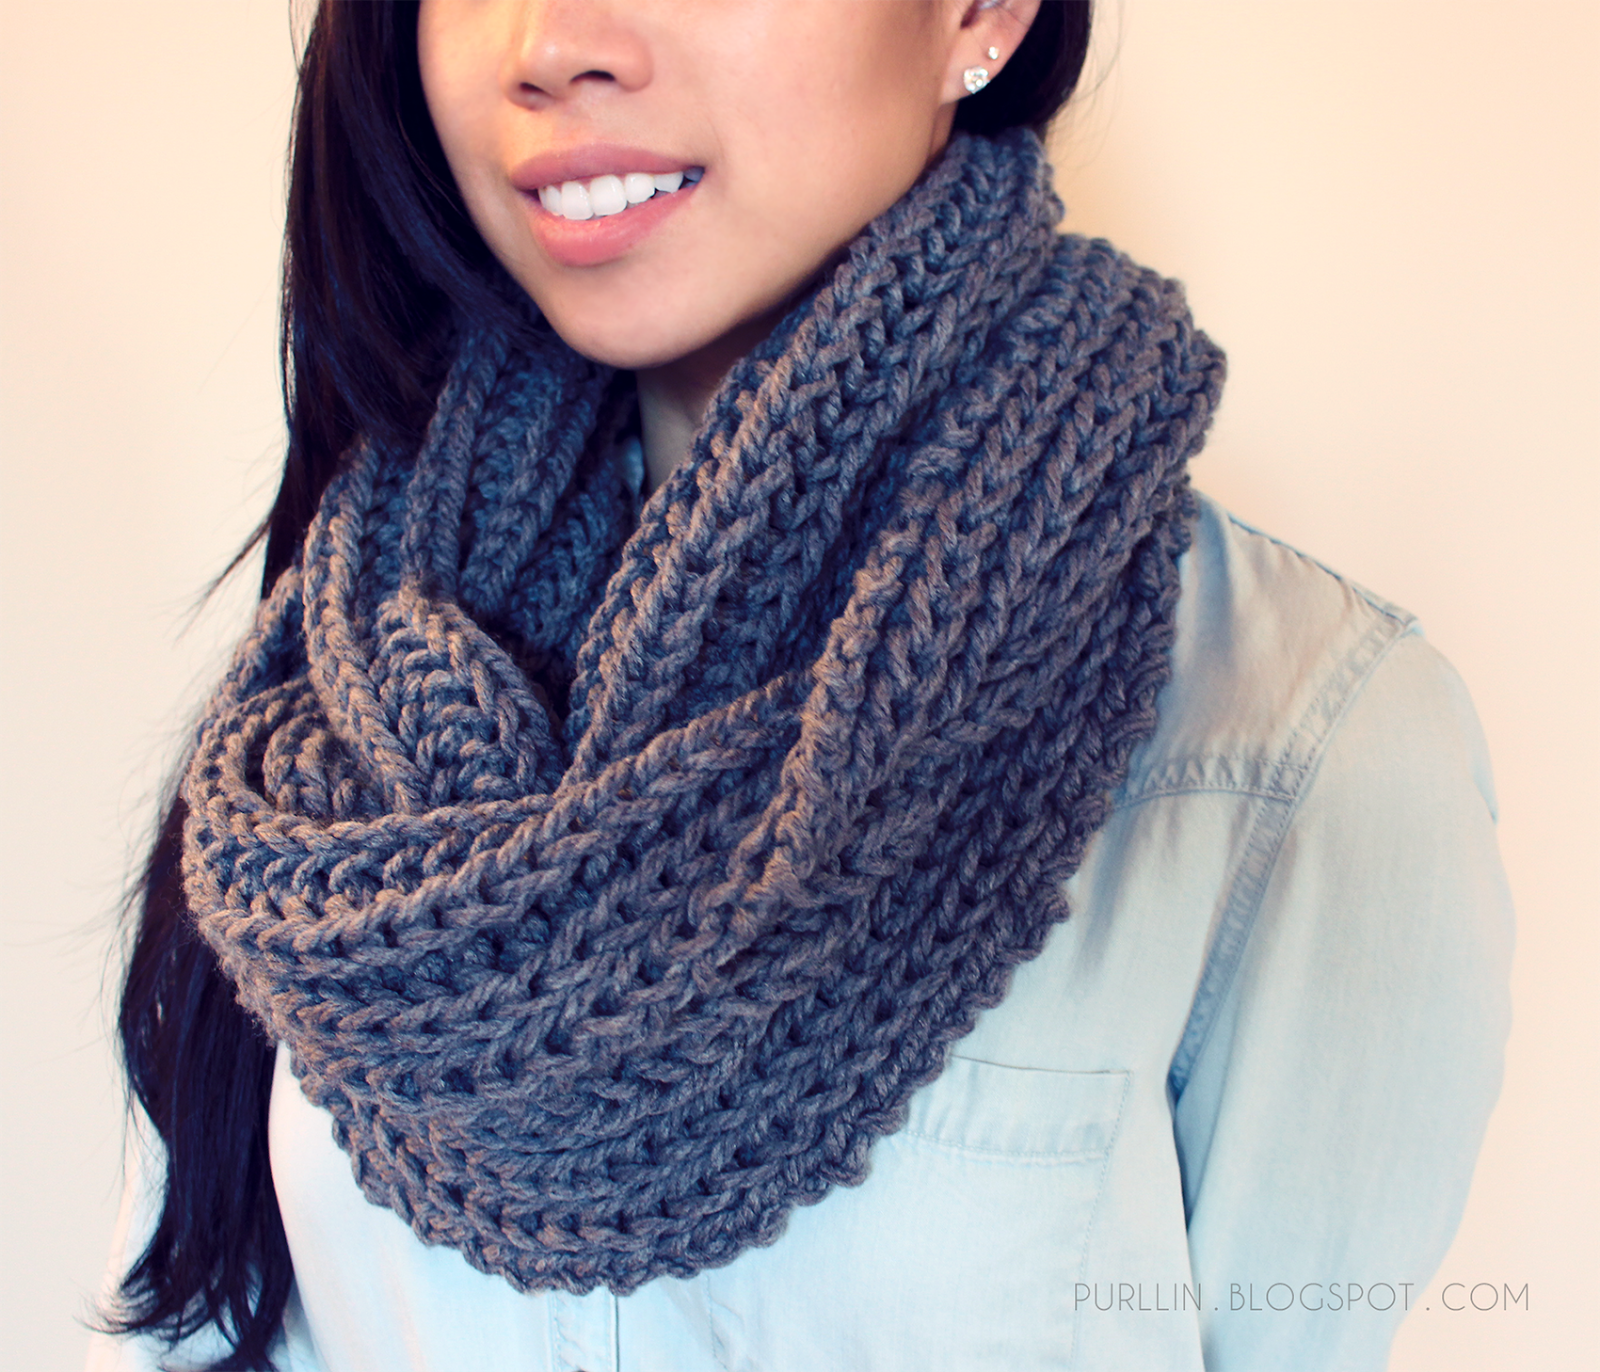 Knitting Patterns For Big Scarves : FREE easy beginner knitting pattern for a chunky knit grey infinity circle sc...